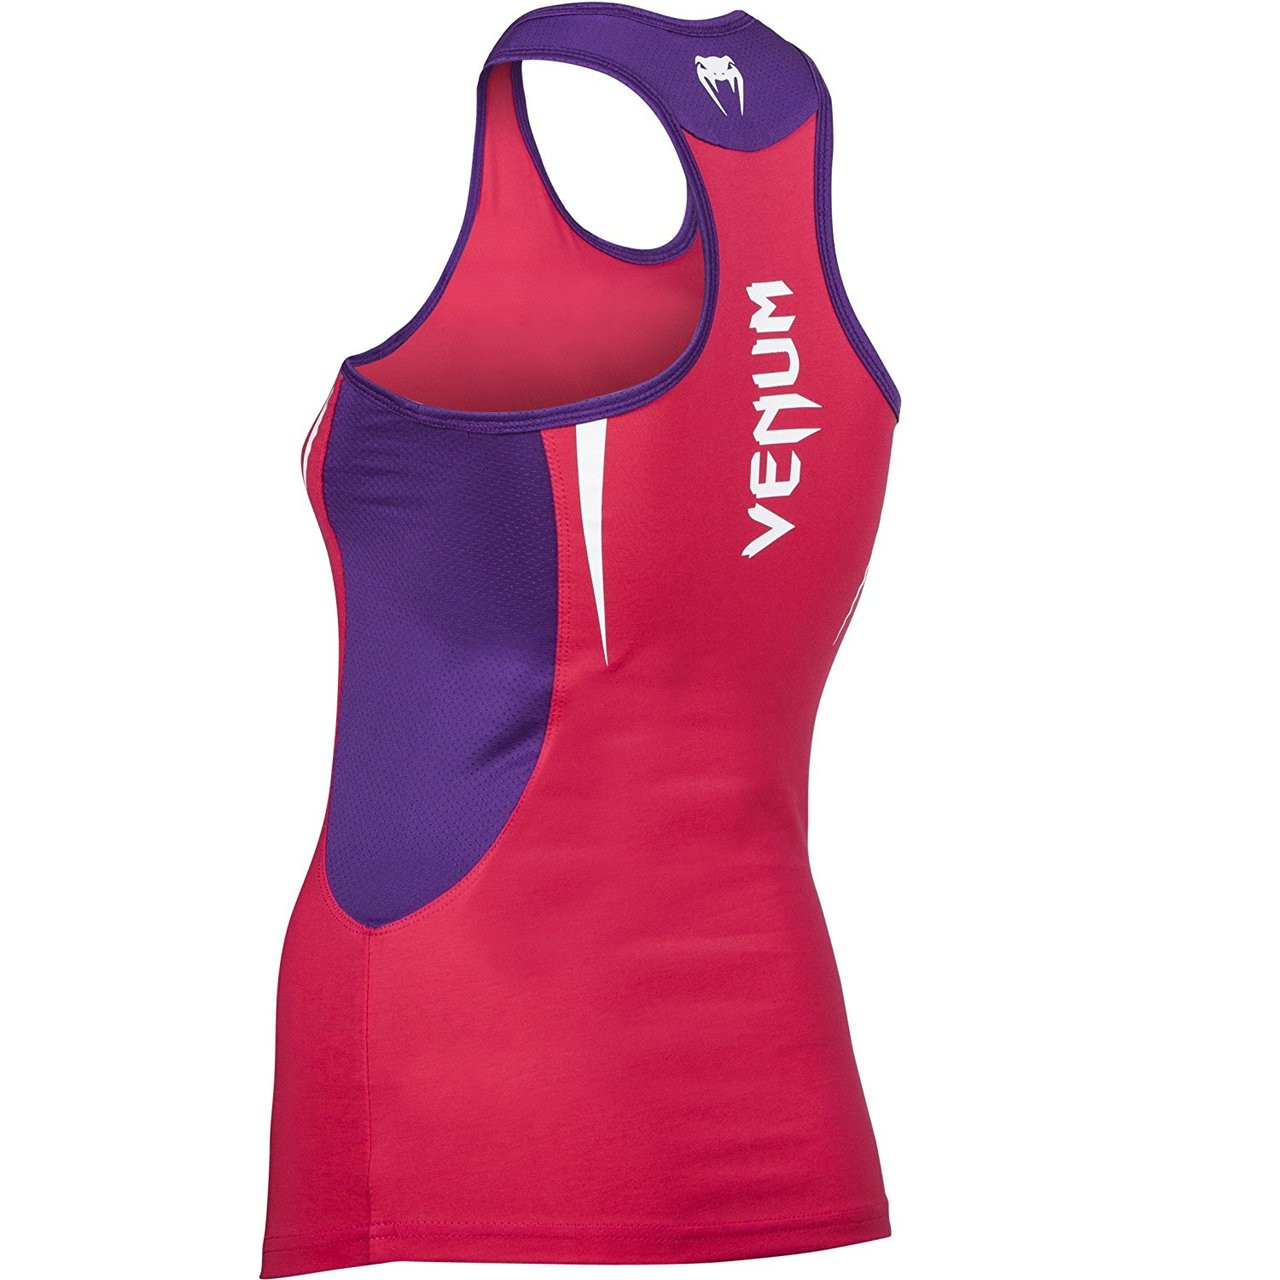 Venum Body fit Tank Top Pink now available at www.thejiujitsushop.com  Enjoy Free Shipping from The Jiu Jitsu Shop today!